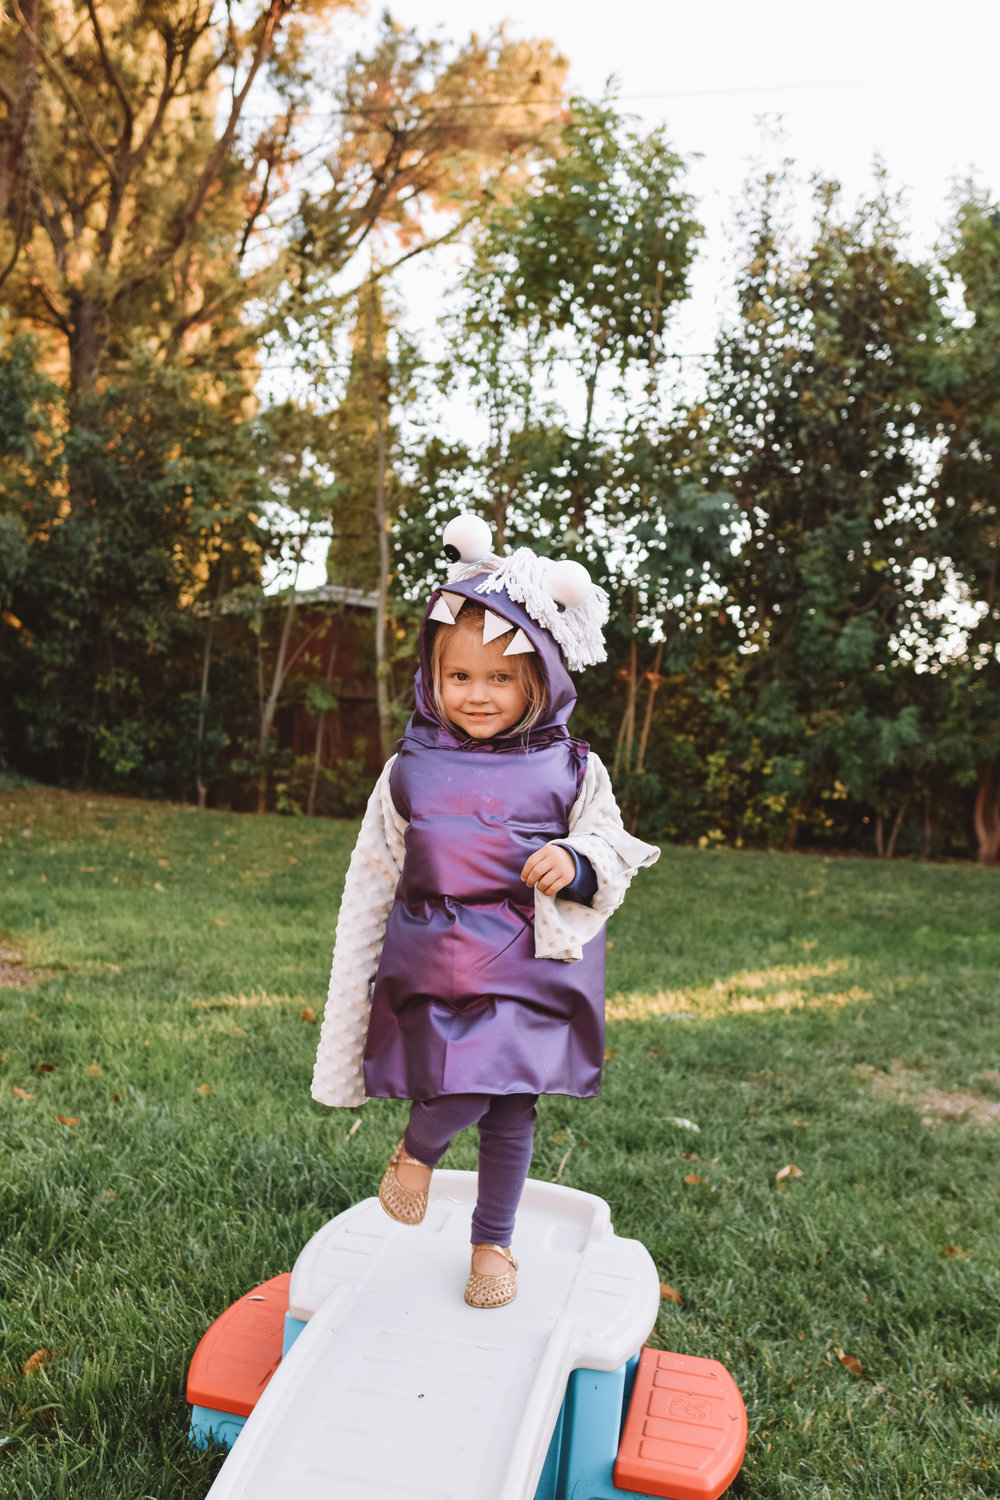 Monsters Inc halloween Costumes - Cute Family Pregnancy Halloween Costumes - The Overwhelmed Mommy Blogger